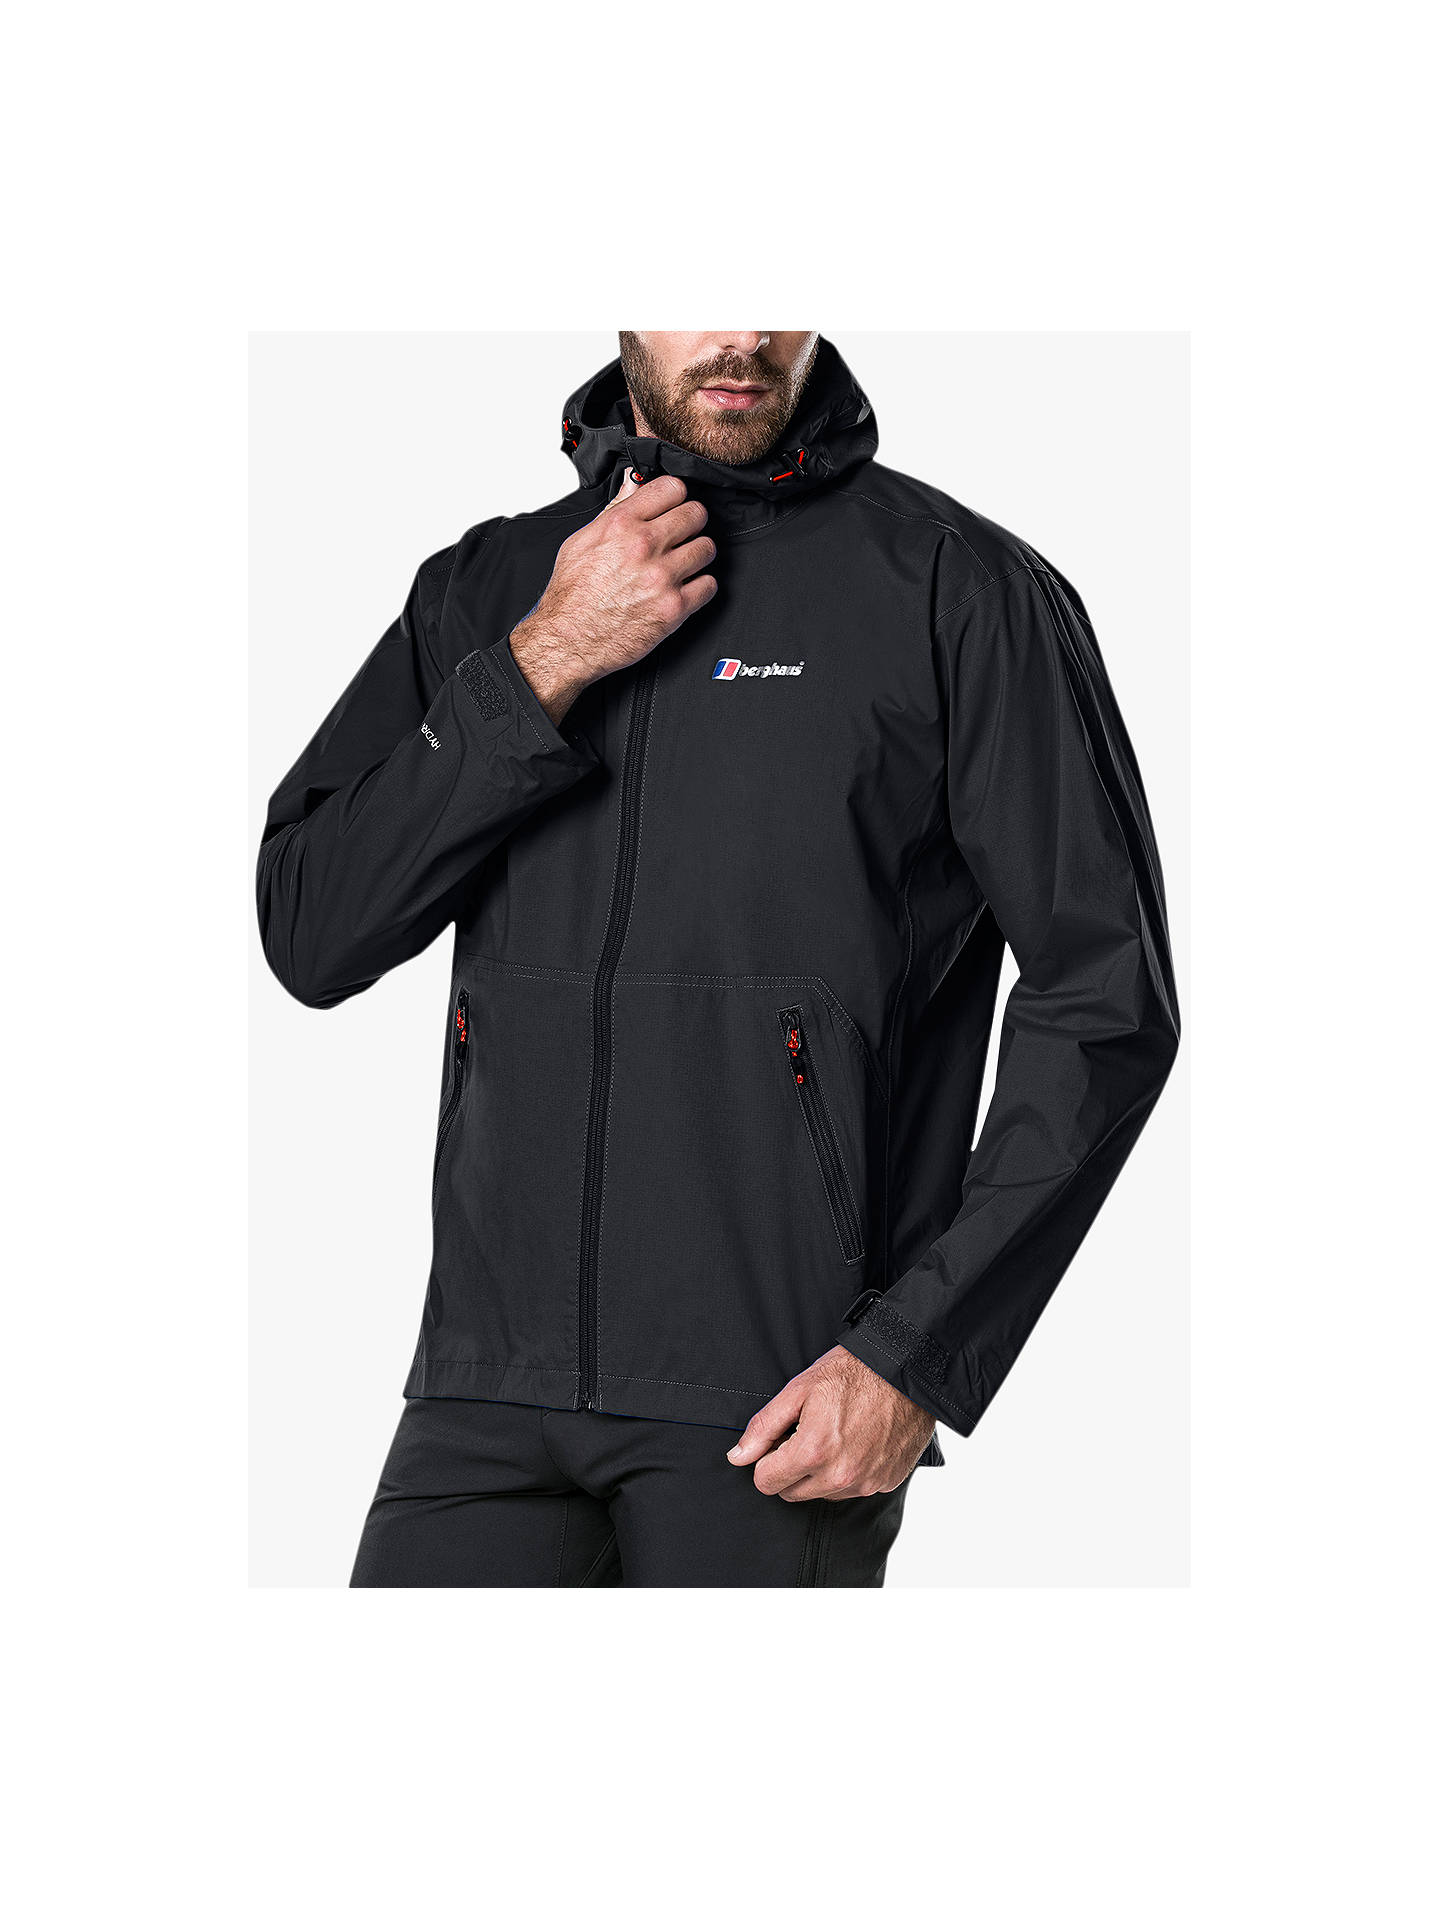 New Berghaus Mens Ruction 2.0 Waterproof Jacket Outdoor Clothing